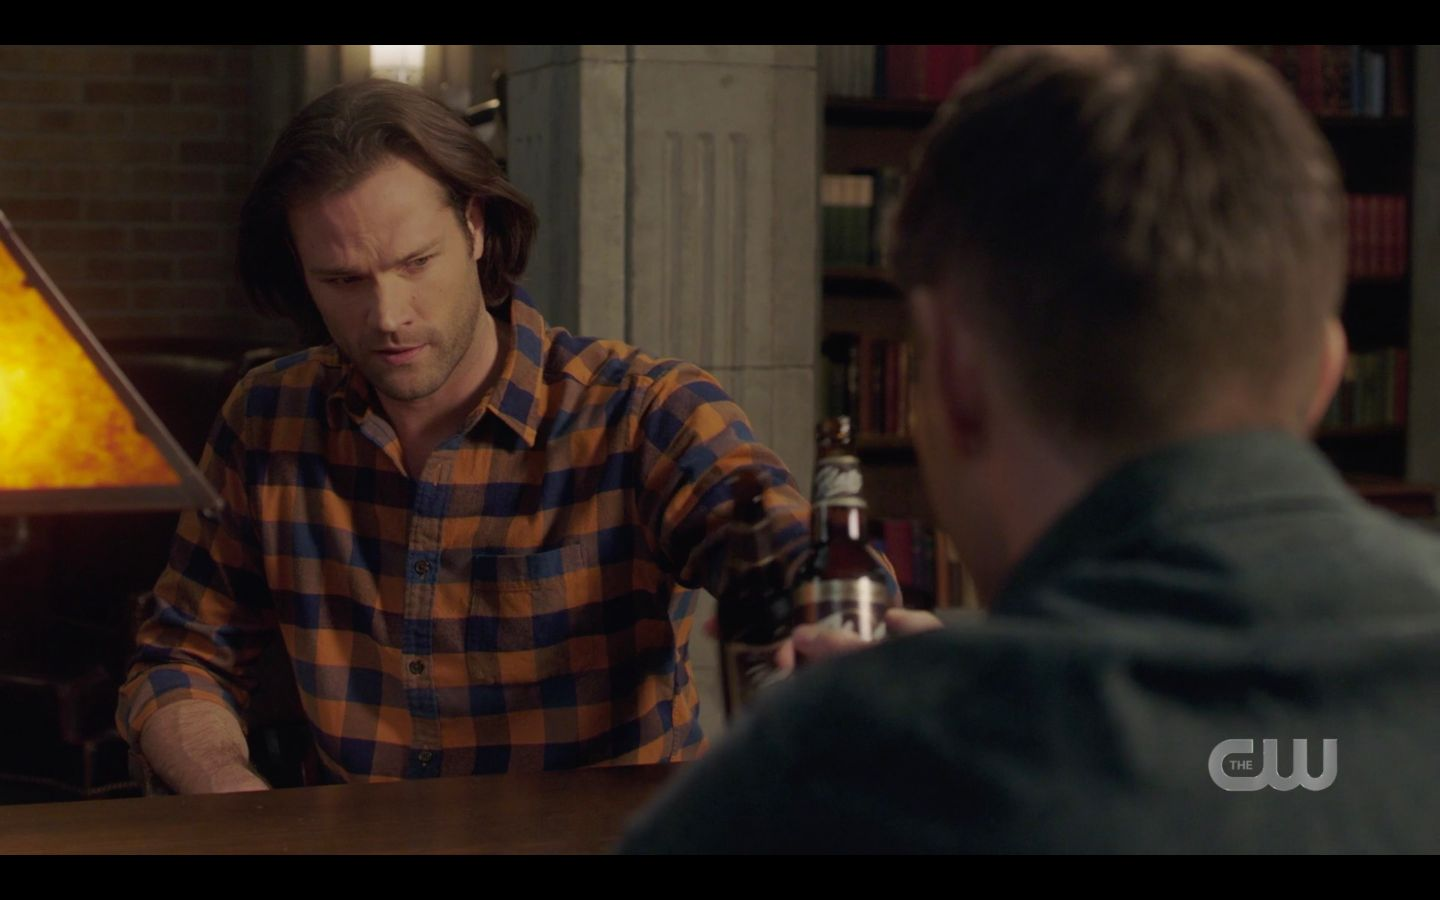 Sam Winchester drinking beer with Dean after return home SPN 14.18